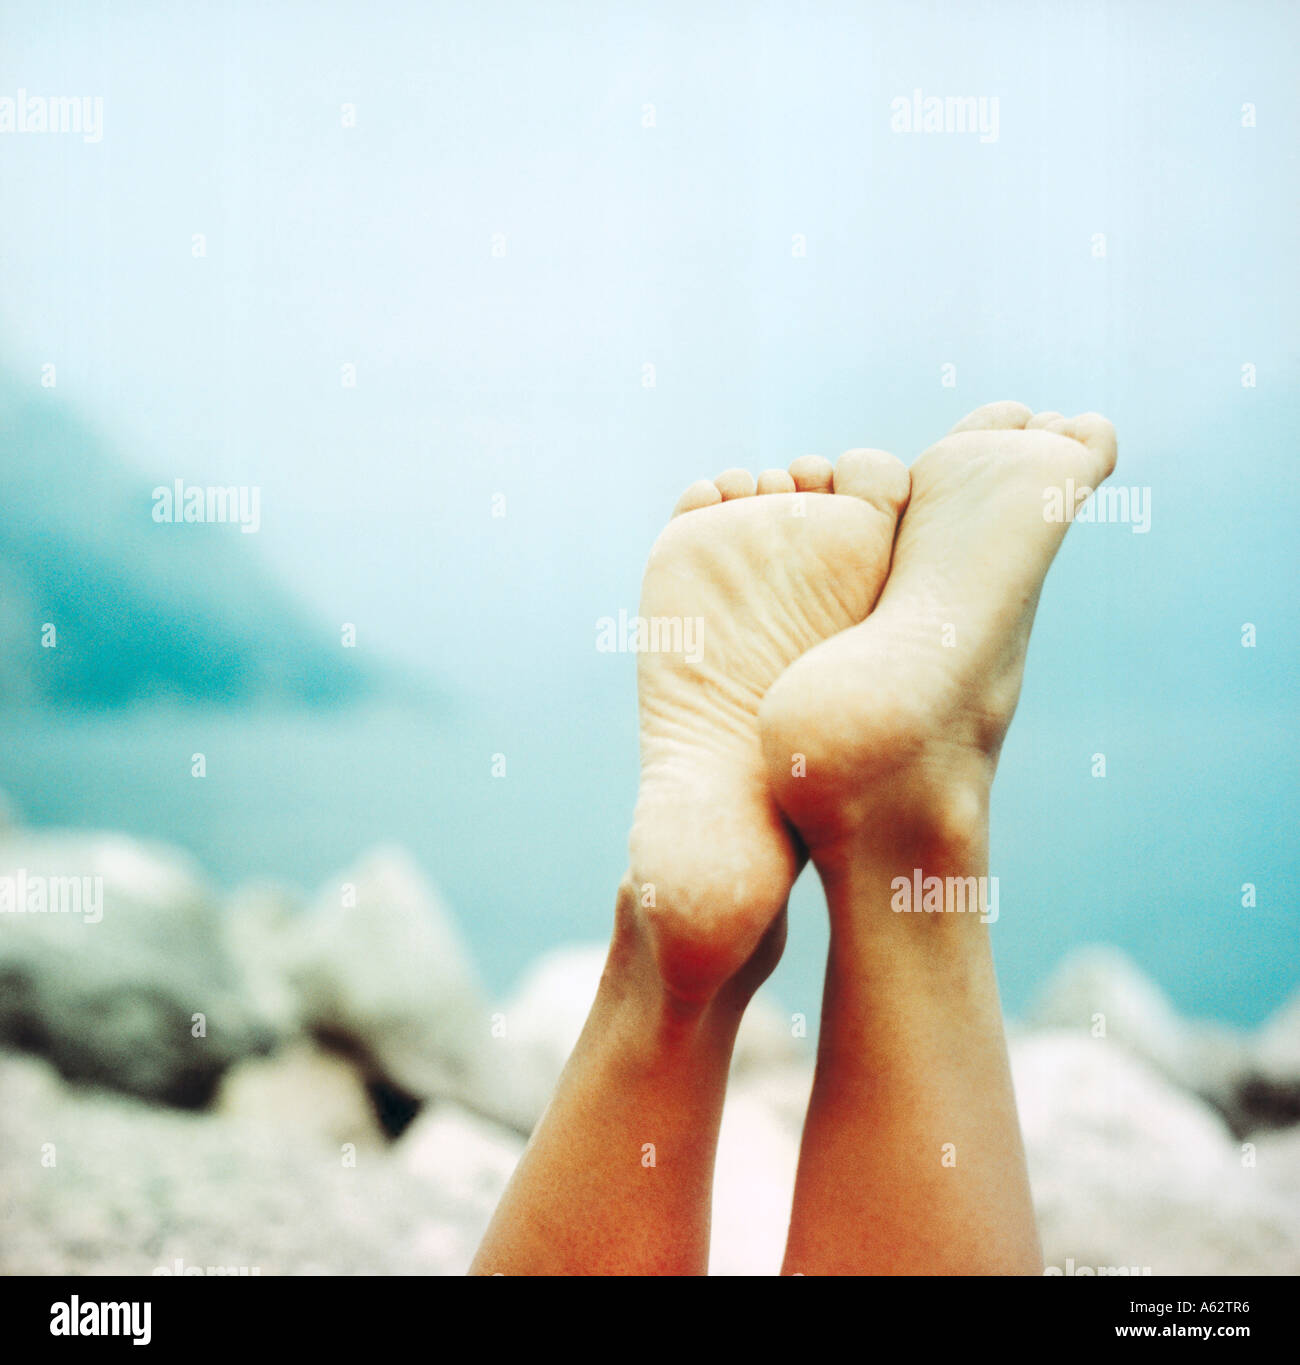 Soles of foot, close-up - Stock Image